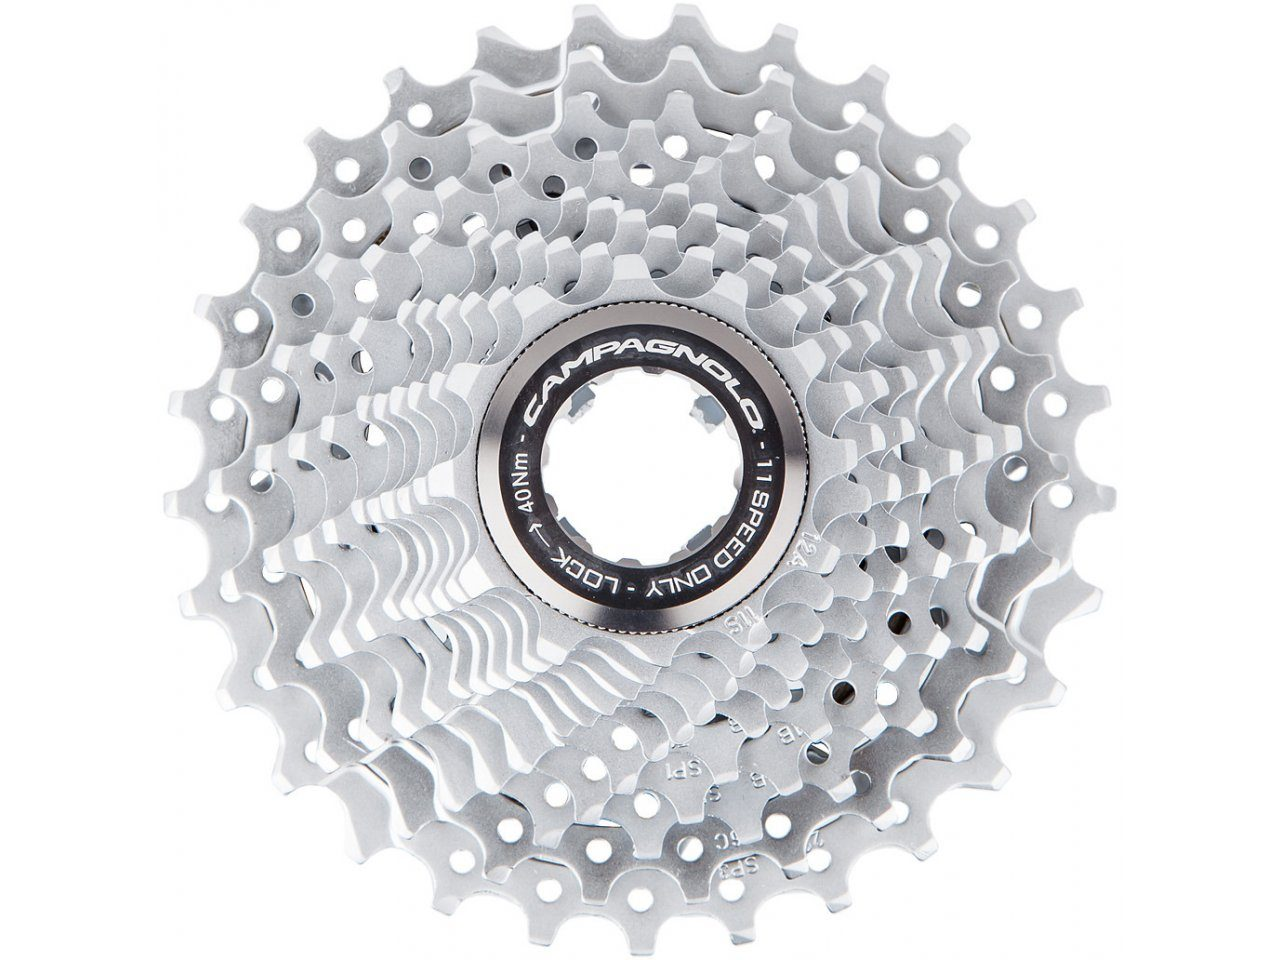 Campagnolo Centaur Cassettes 10 Speed UD With Maximum Shifting Speed 12-30T